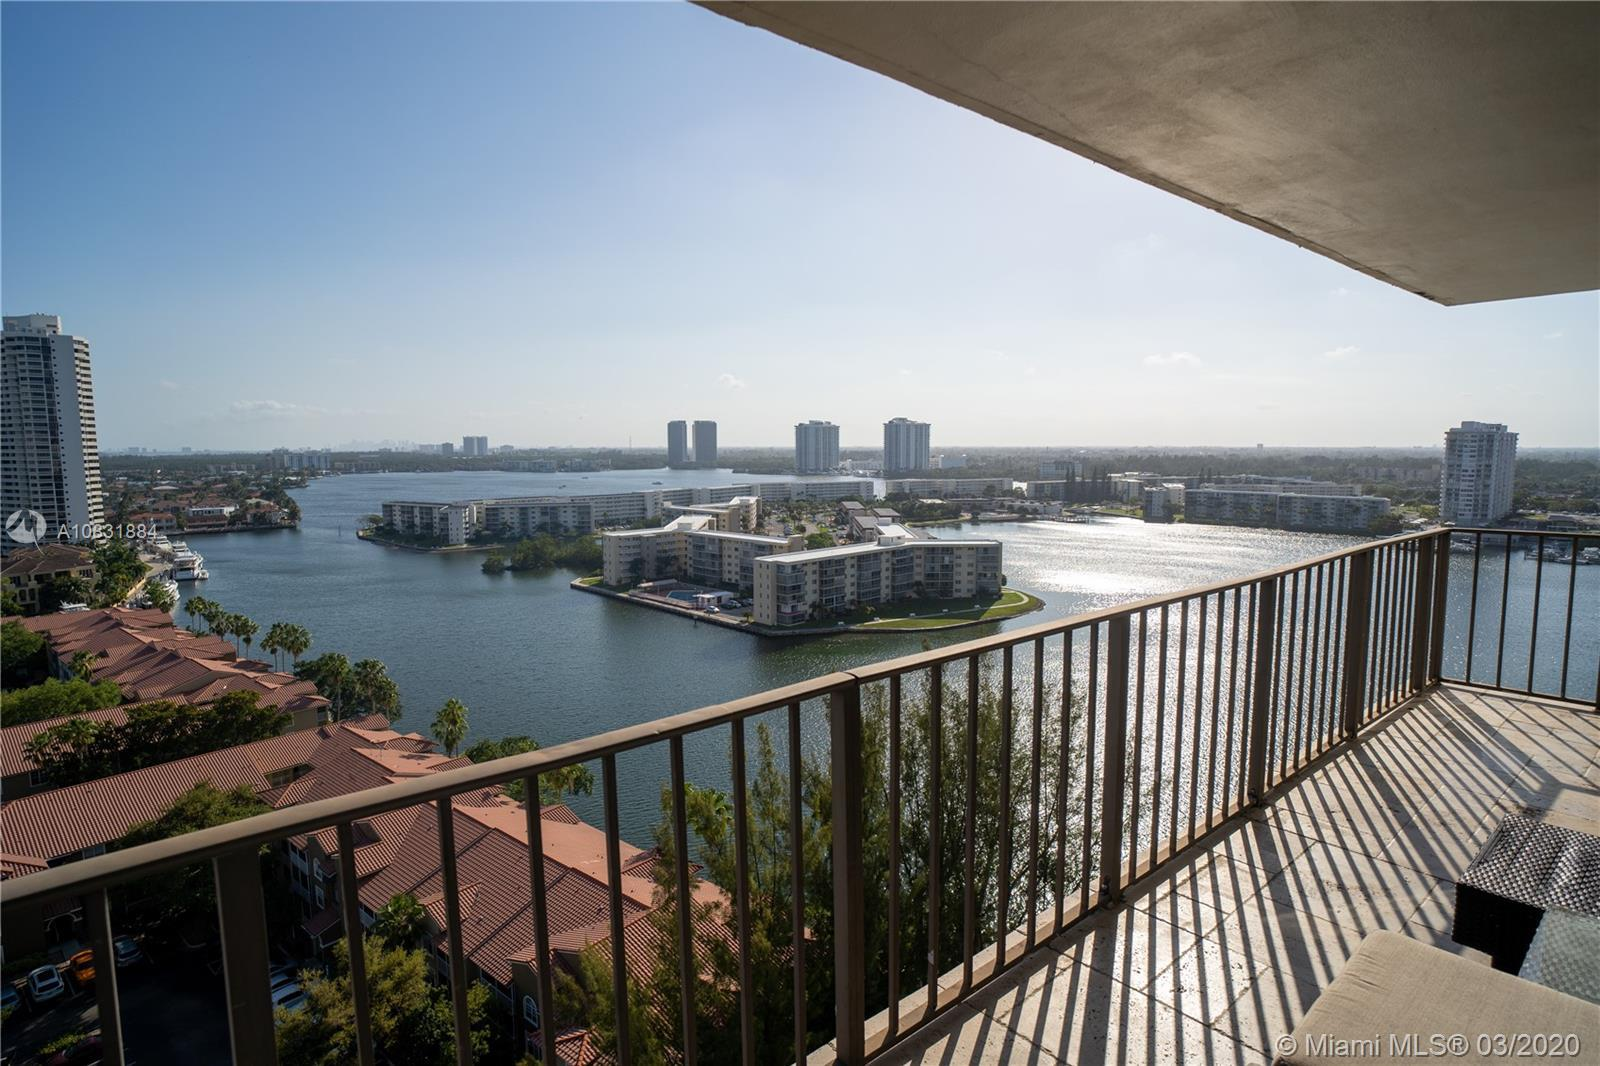 VIEWS! VIEWS! VIEWS! This modern and open floor plan unit allows you 1610 sq ft of spectacular views